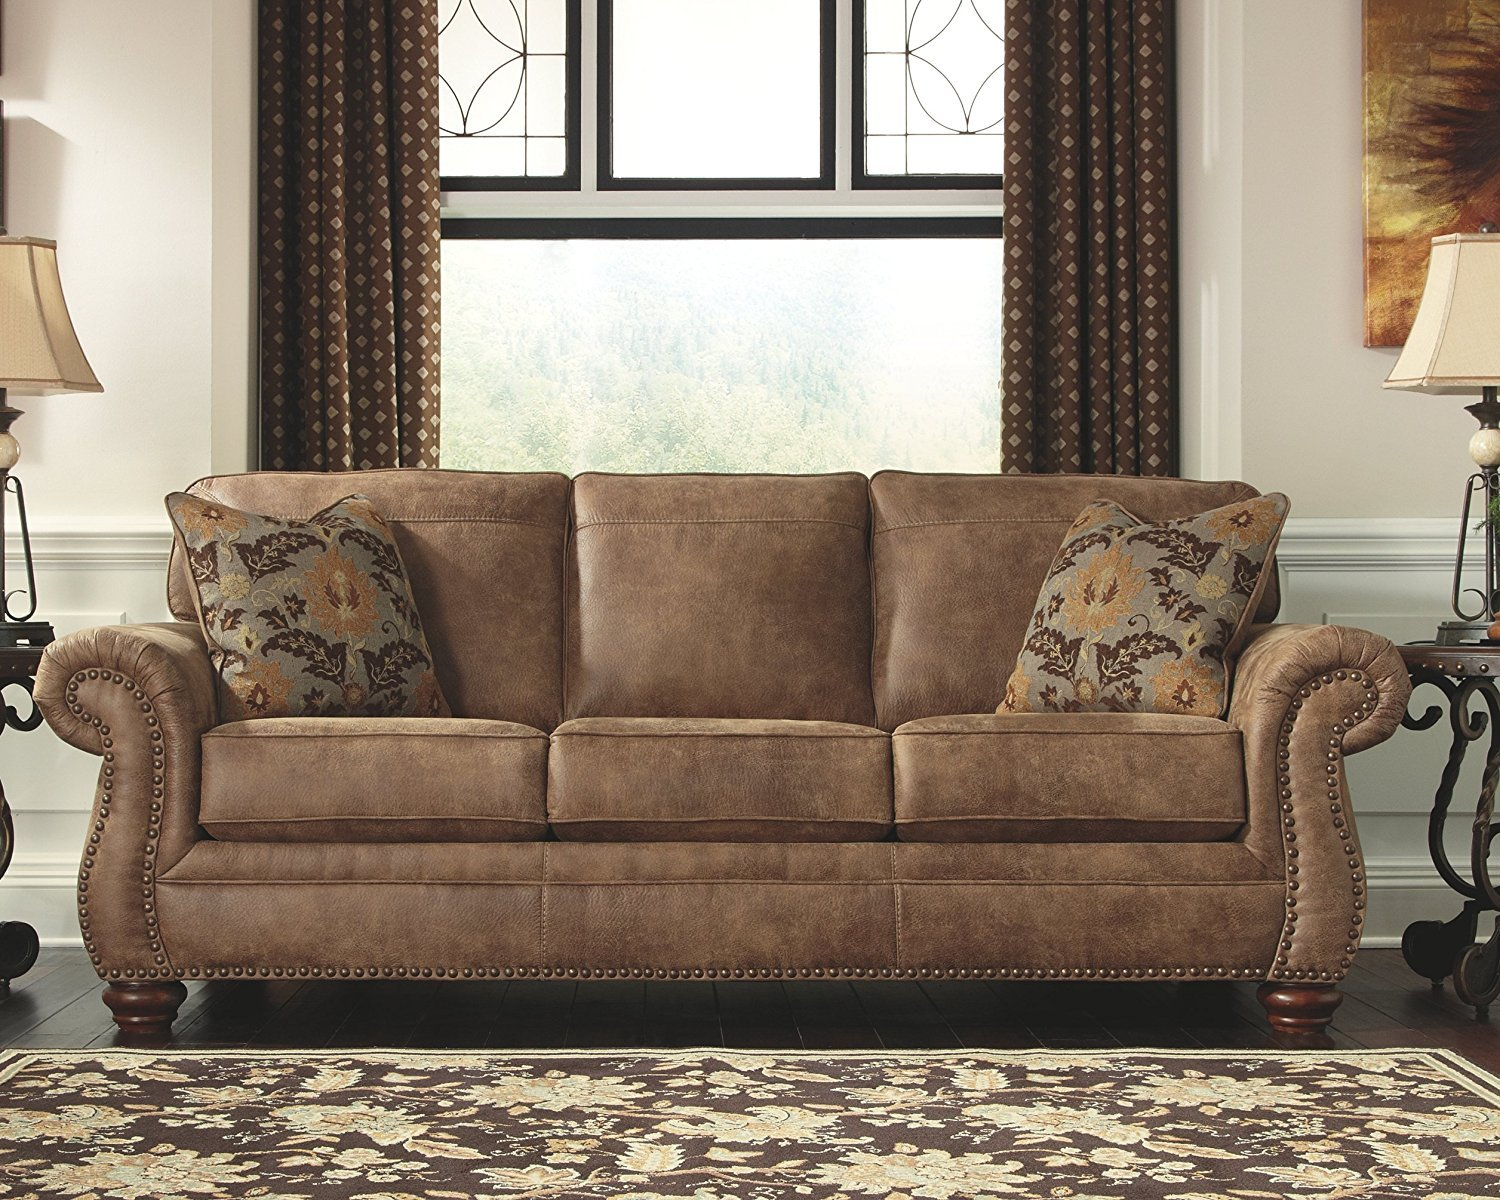 Ashley Furniture Signature Design Modern Sofa Contemporary Style Couch Brown Light Brown